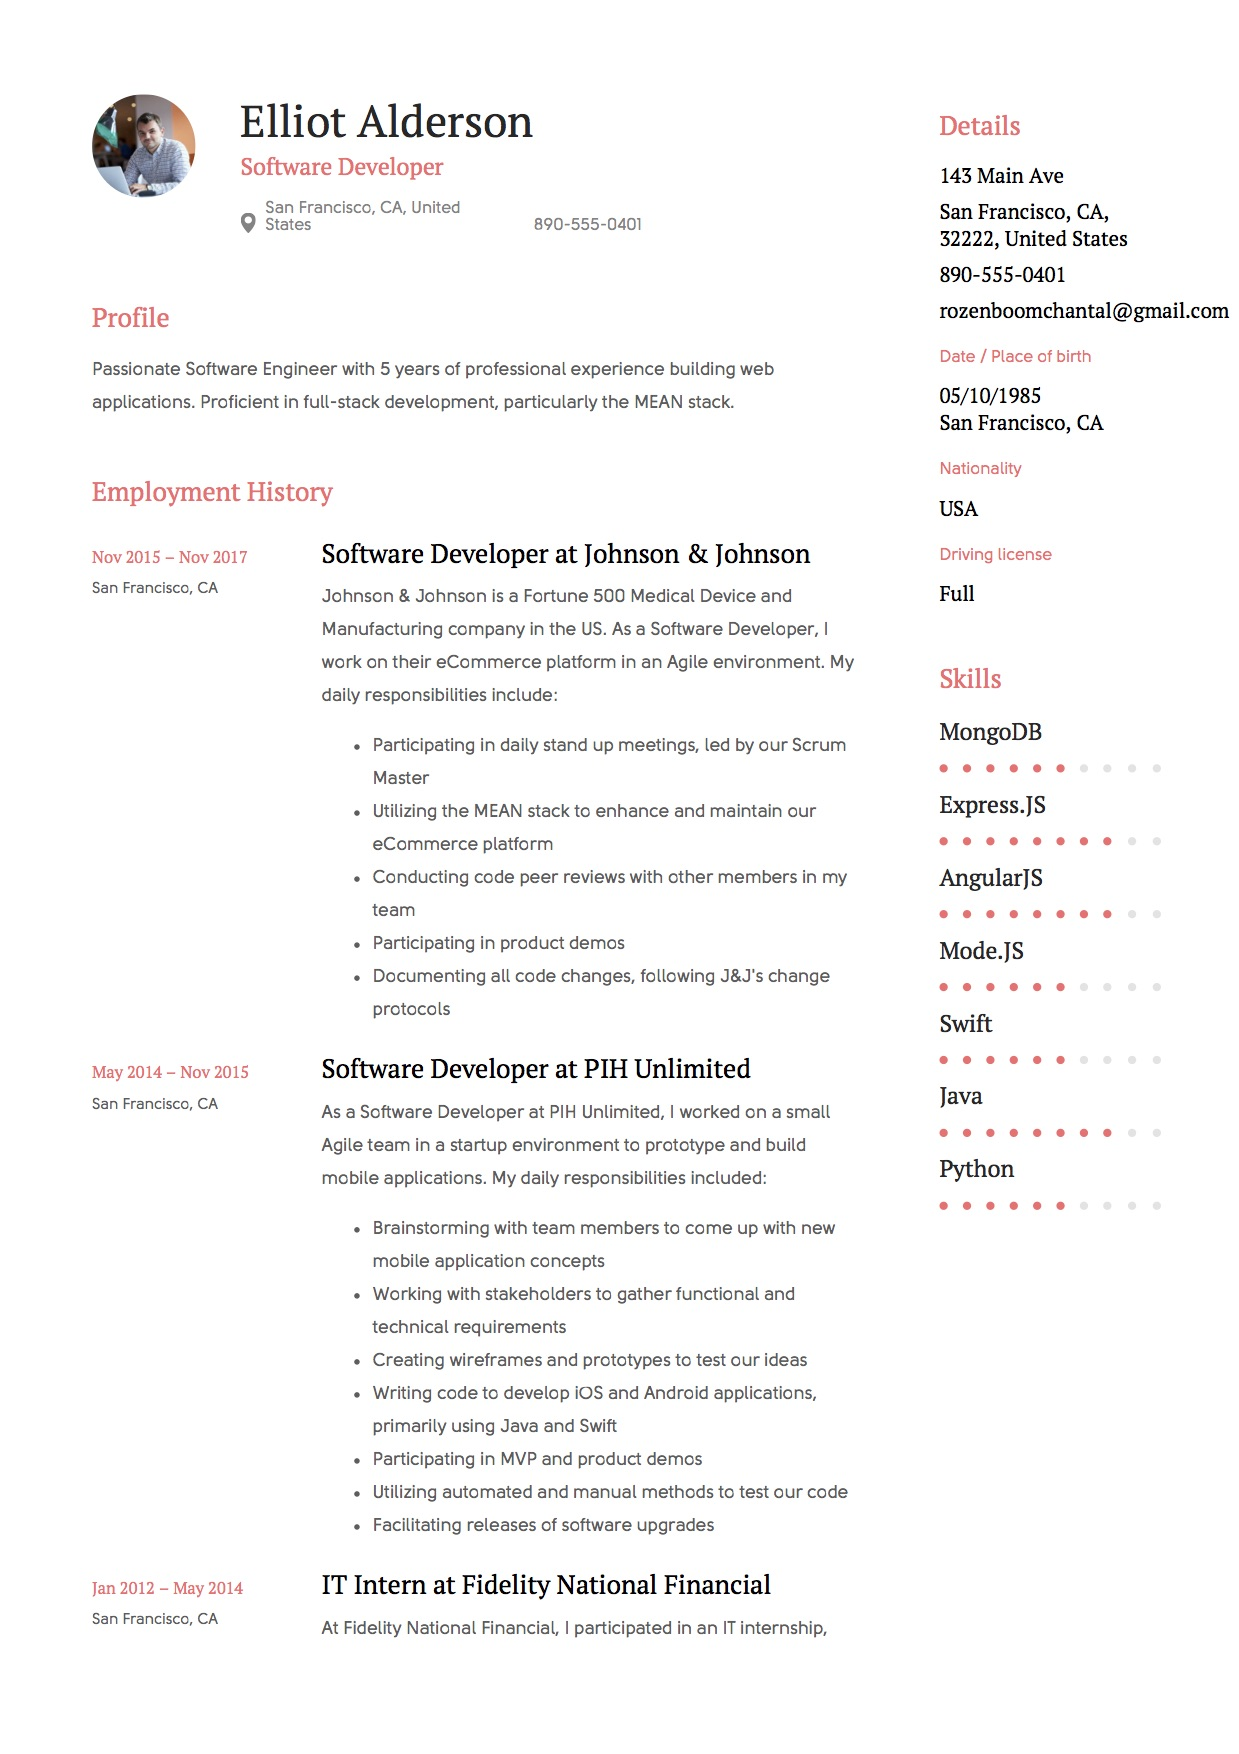 oftware developer resume example6 - Software Developer Resume